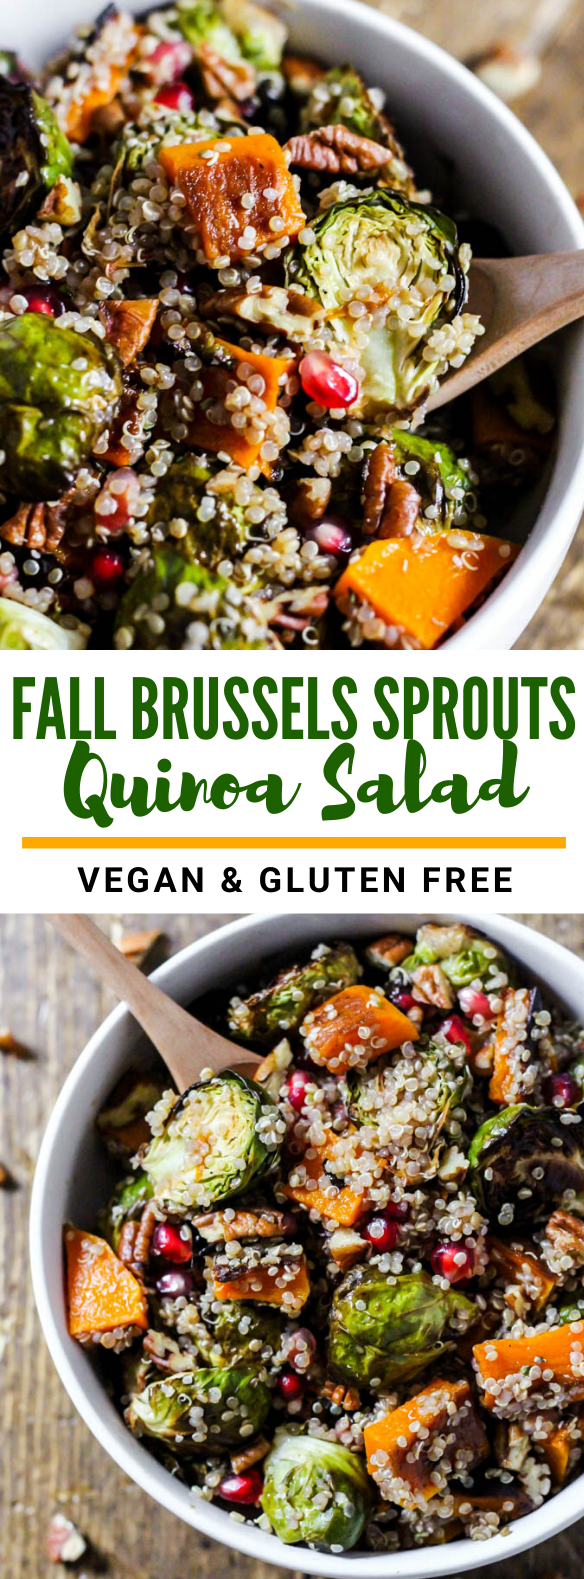 Fall Brussels Sprouts Quinoa Salad #vegetarian #thanksgiving